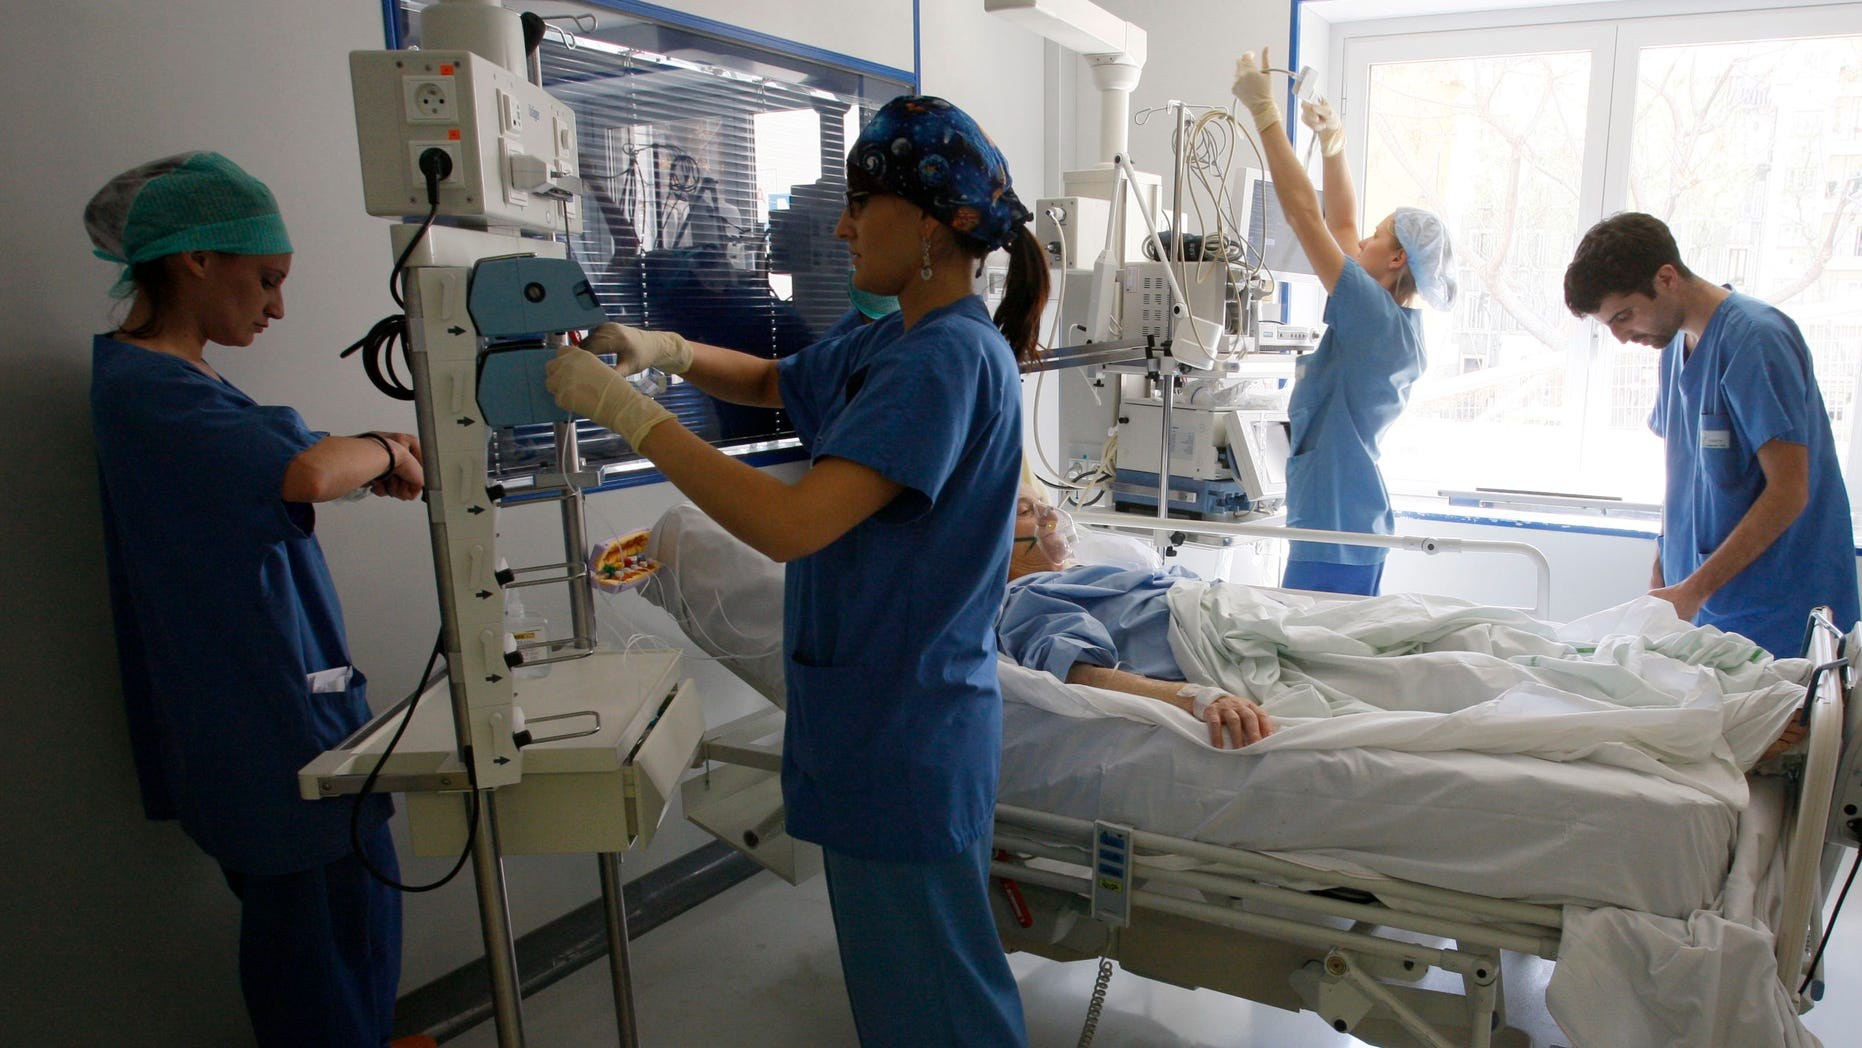 Nurses check a patient in the intensive care unit.